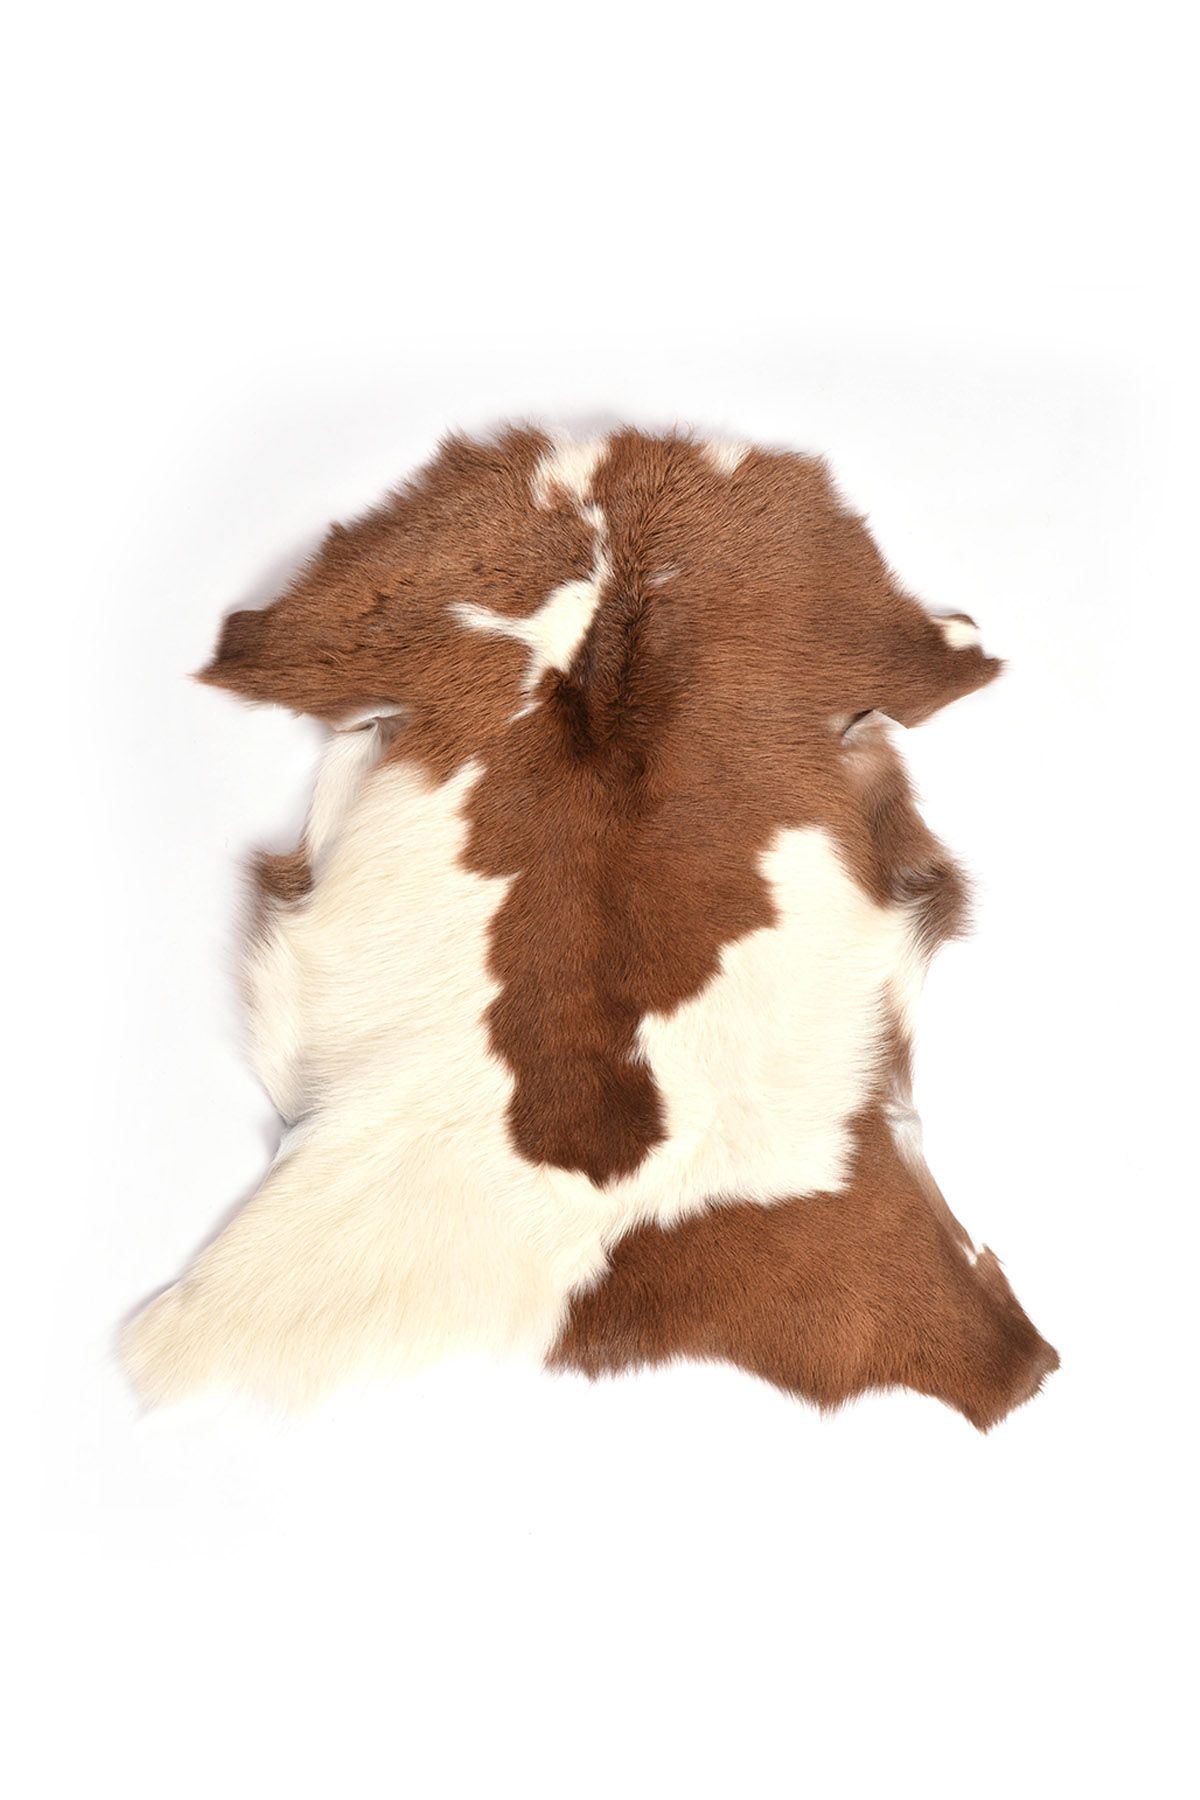 Erdogan Deri Decorative Sheepskin Rug Natural